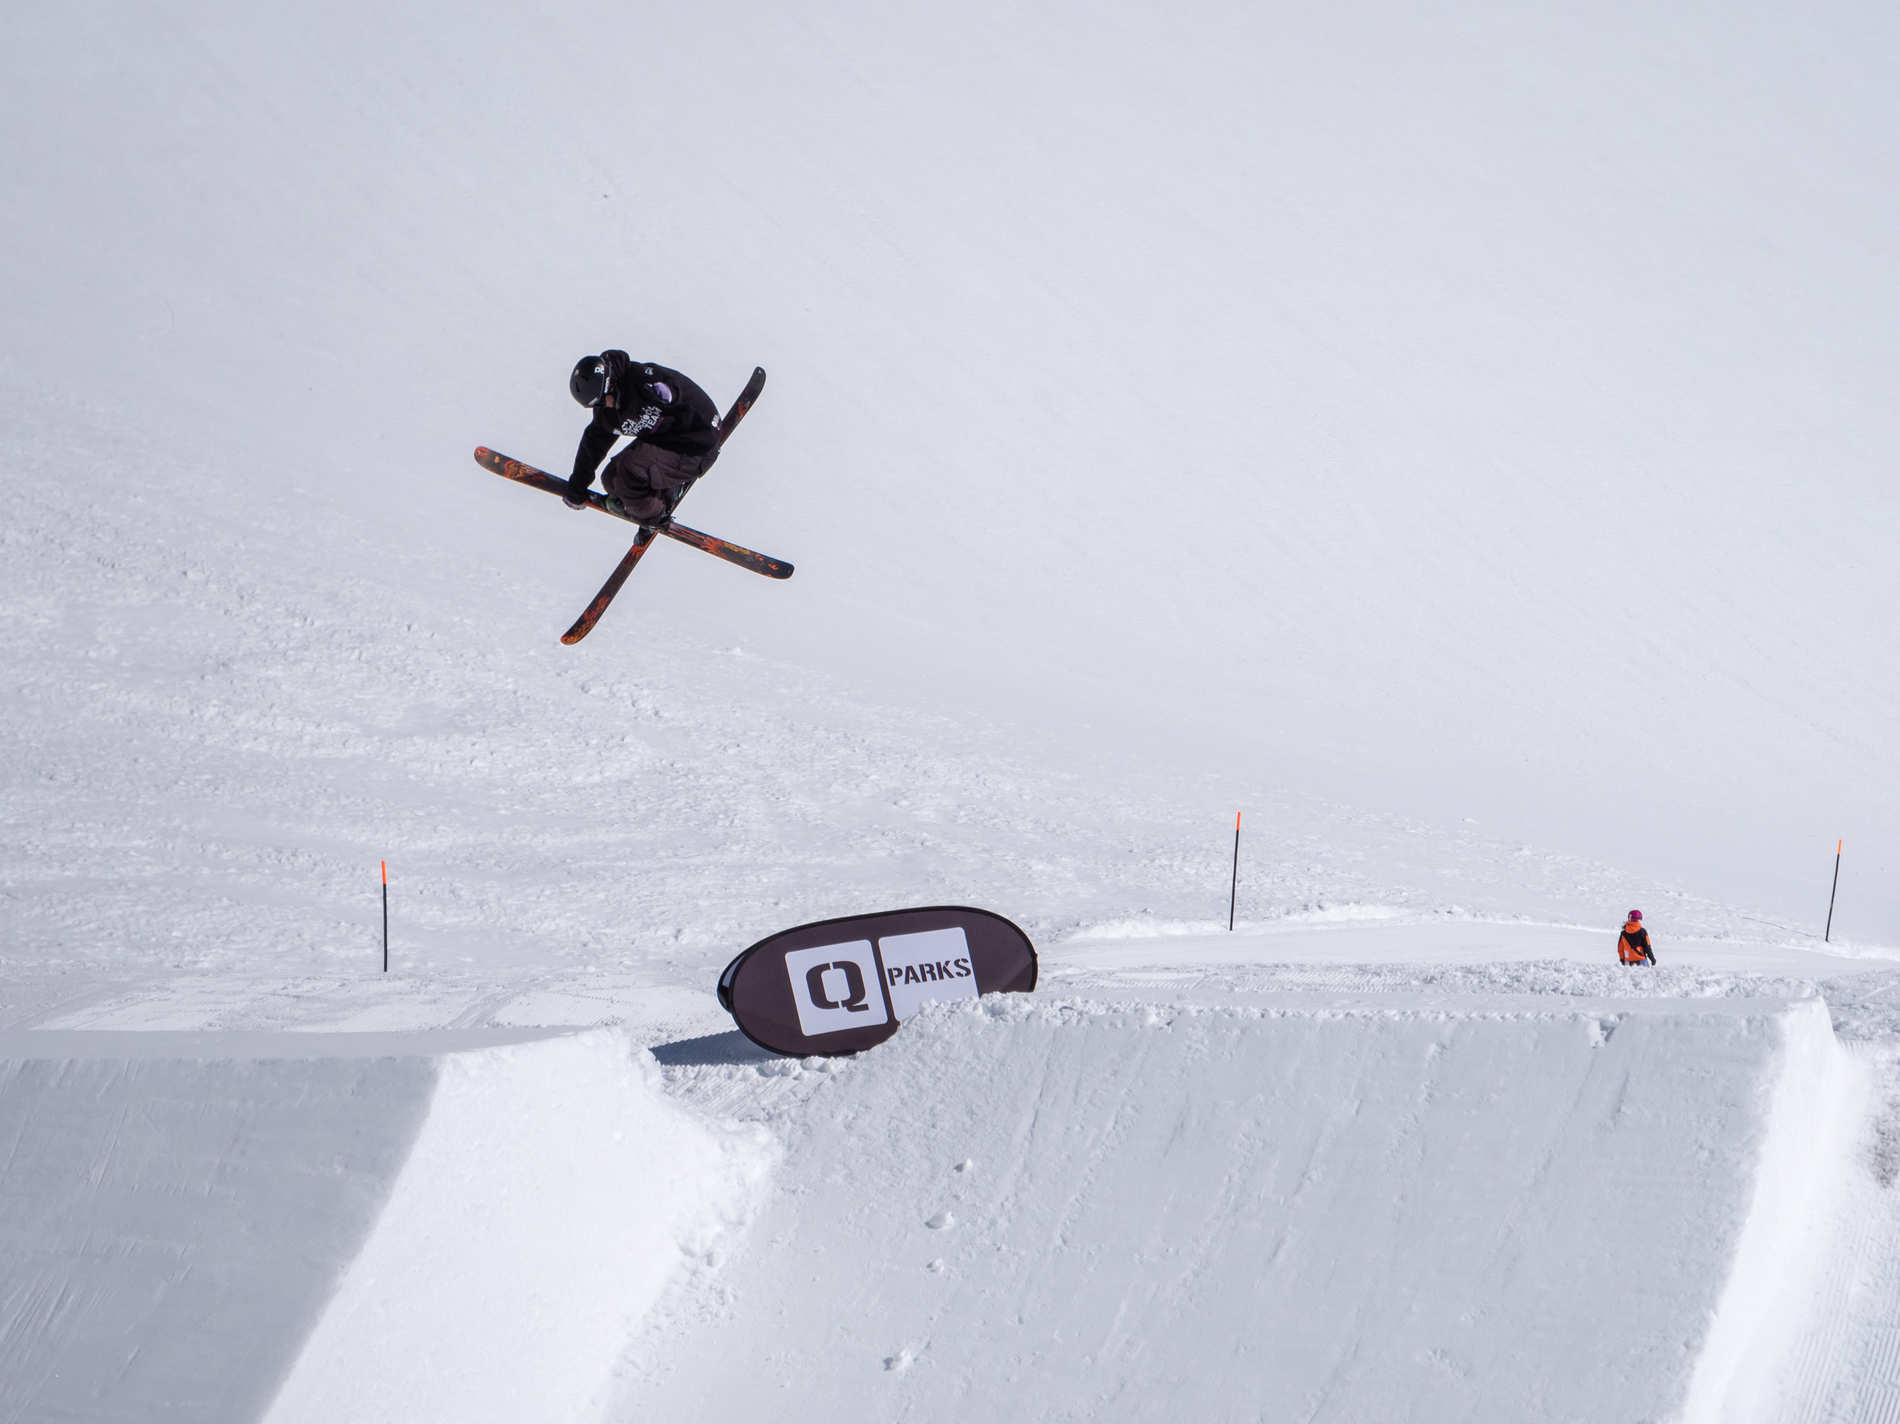 schilthorn 23 03 2019 action fs unknown patrick luchs qparks 001